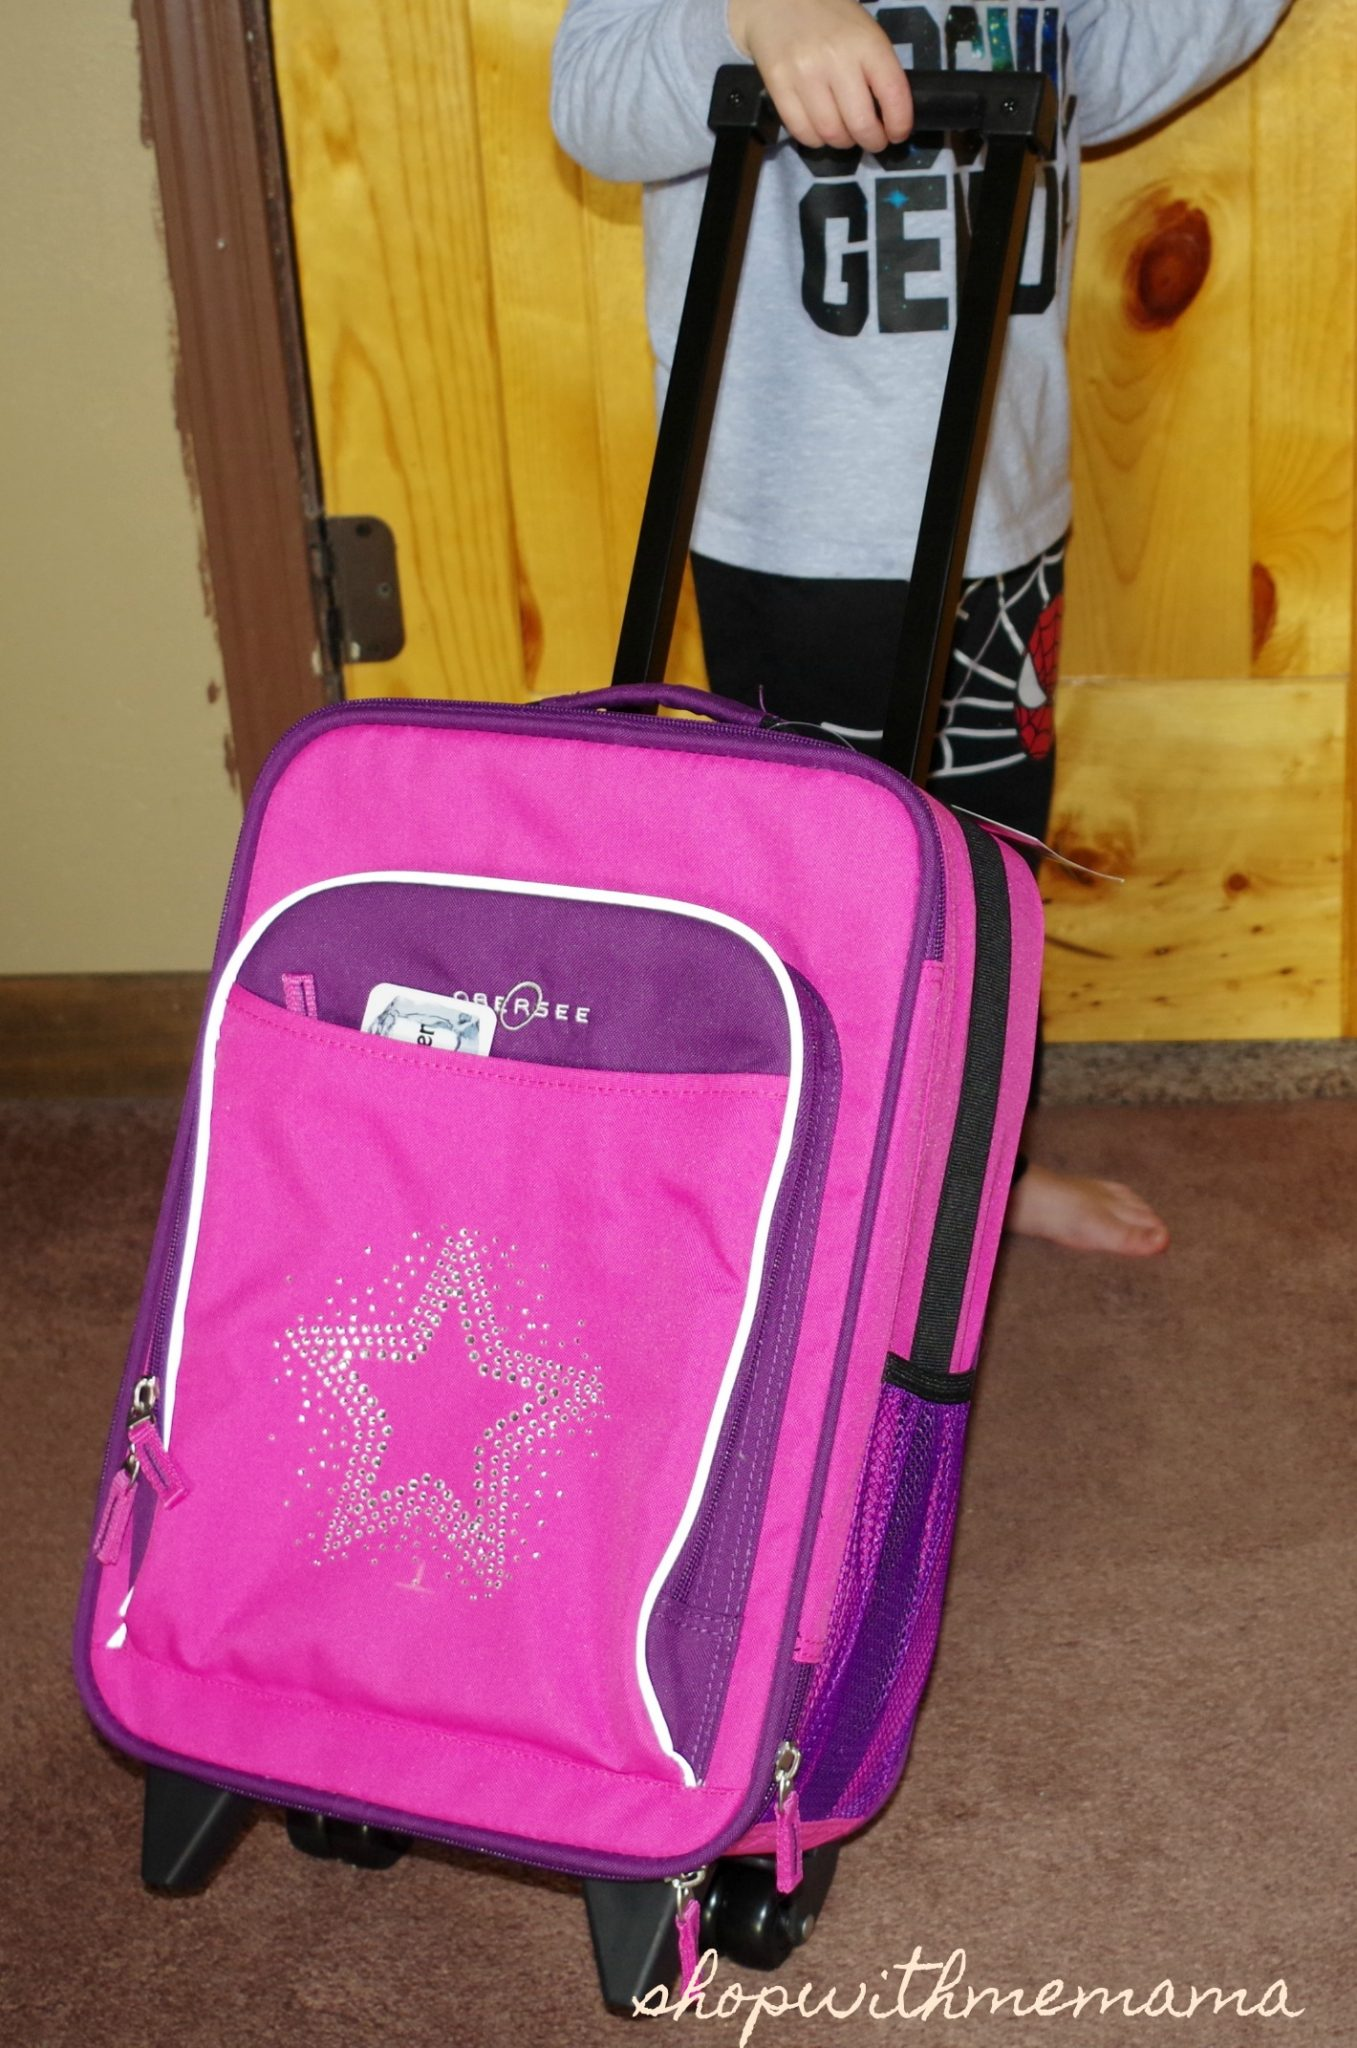 b1a8a444454d Obersee Kids Luggage Makes Traveling With Kids Fun! - Shop With Me Mama